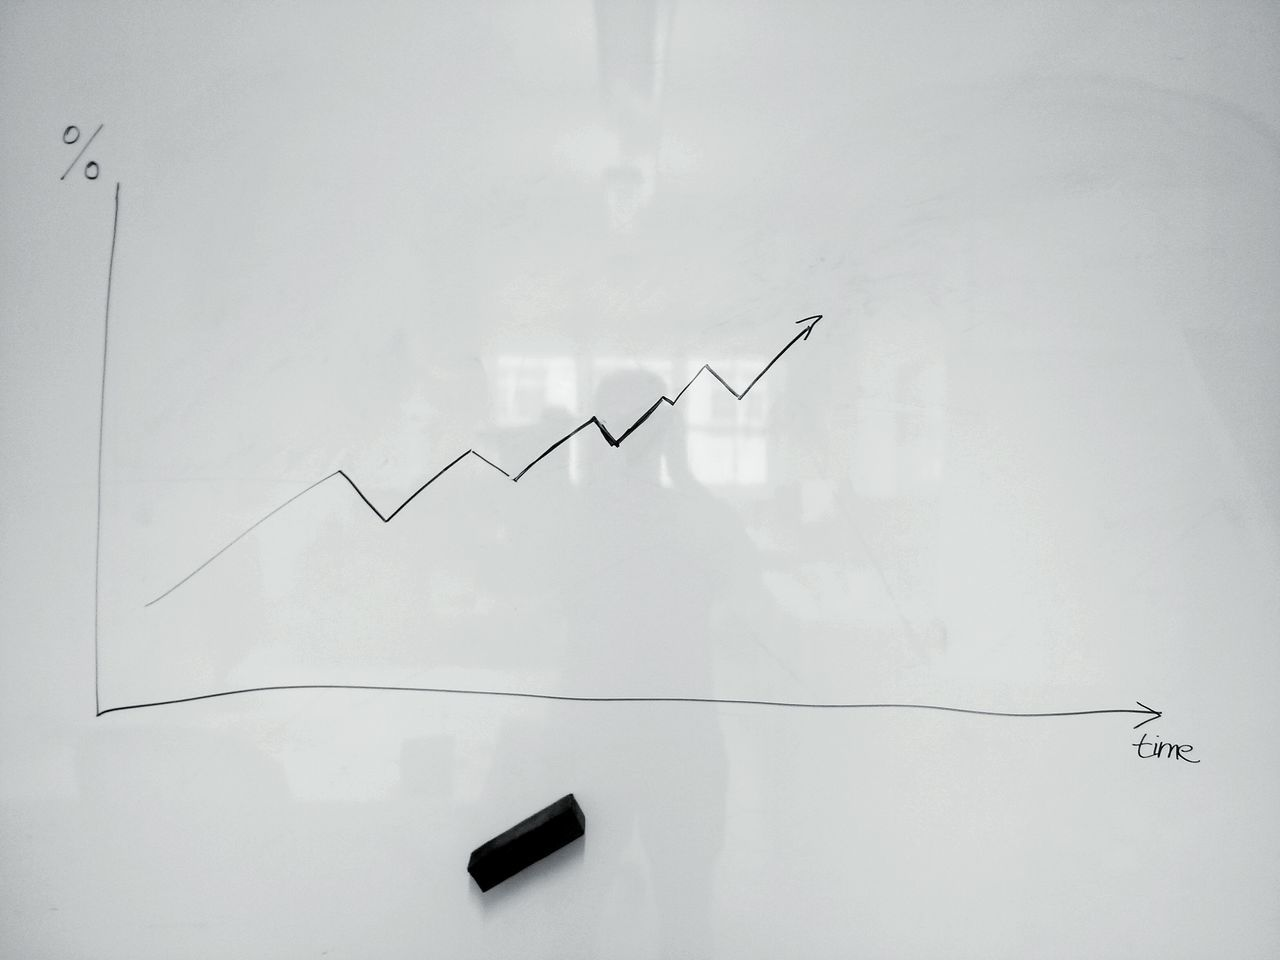 Line graph representing growth on whiteboard